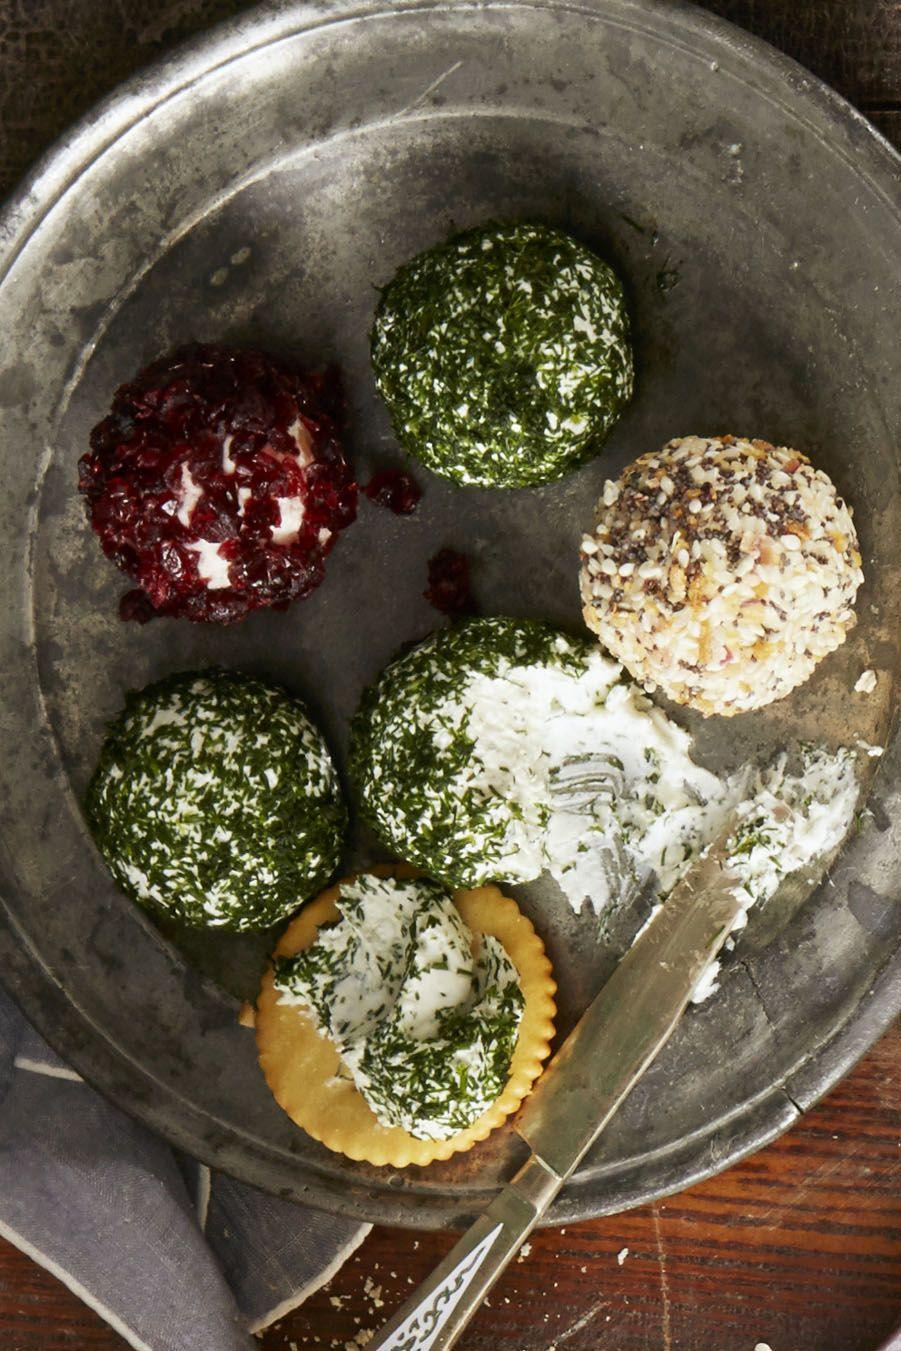 """<p>Cheese balls are making a comeback, haven't you heard?</p><p><em><a href=""""https://www.goodhousekeeping.com/food-recipes/easy/a35164/trio-of-cheese-balls/"""" rel=""""nofollow noopener"""" target=""""_blank"""" data-ylk=""""slk:Get the recipe for Trio of Cheese Balls »"""" class=""""link rapid-noclick-resp"""">Get the recipe for Trio of Cheese Balls »</a></em></p><p><strong>RELATED: </strong><a href=""""https://www.goodhousekeeping.com/food-products/g28965148/best-crackers/"""" rel=""""nofollow noopener"""" target=""""_blank"""" data-ylk=""""slk:Best Crackers to Add to Your Next Cheese Platter"""" class=""""link rapid-noclick-resp"""">Best Crackers to Add to Your Next Cheese Platter</a></p>"""